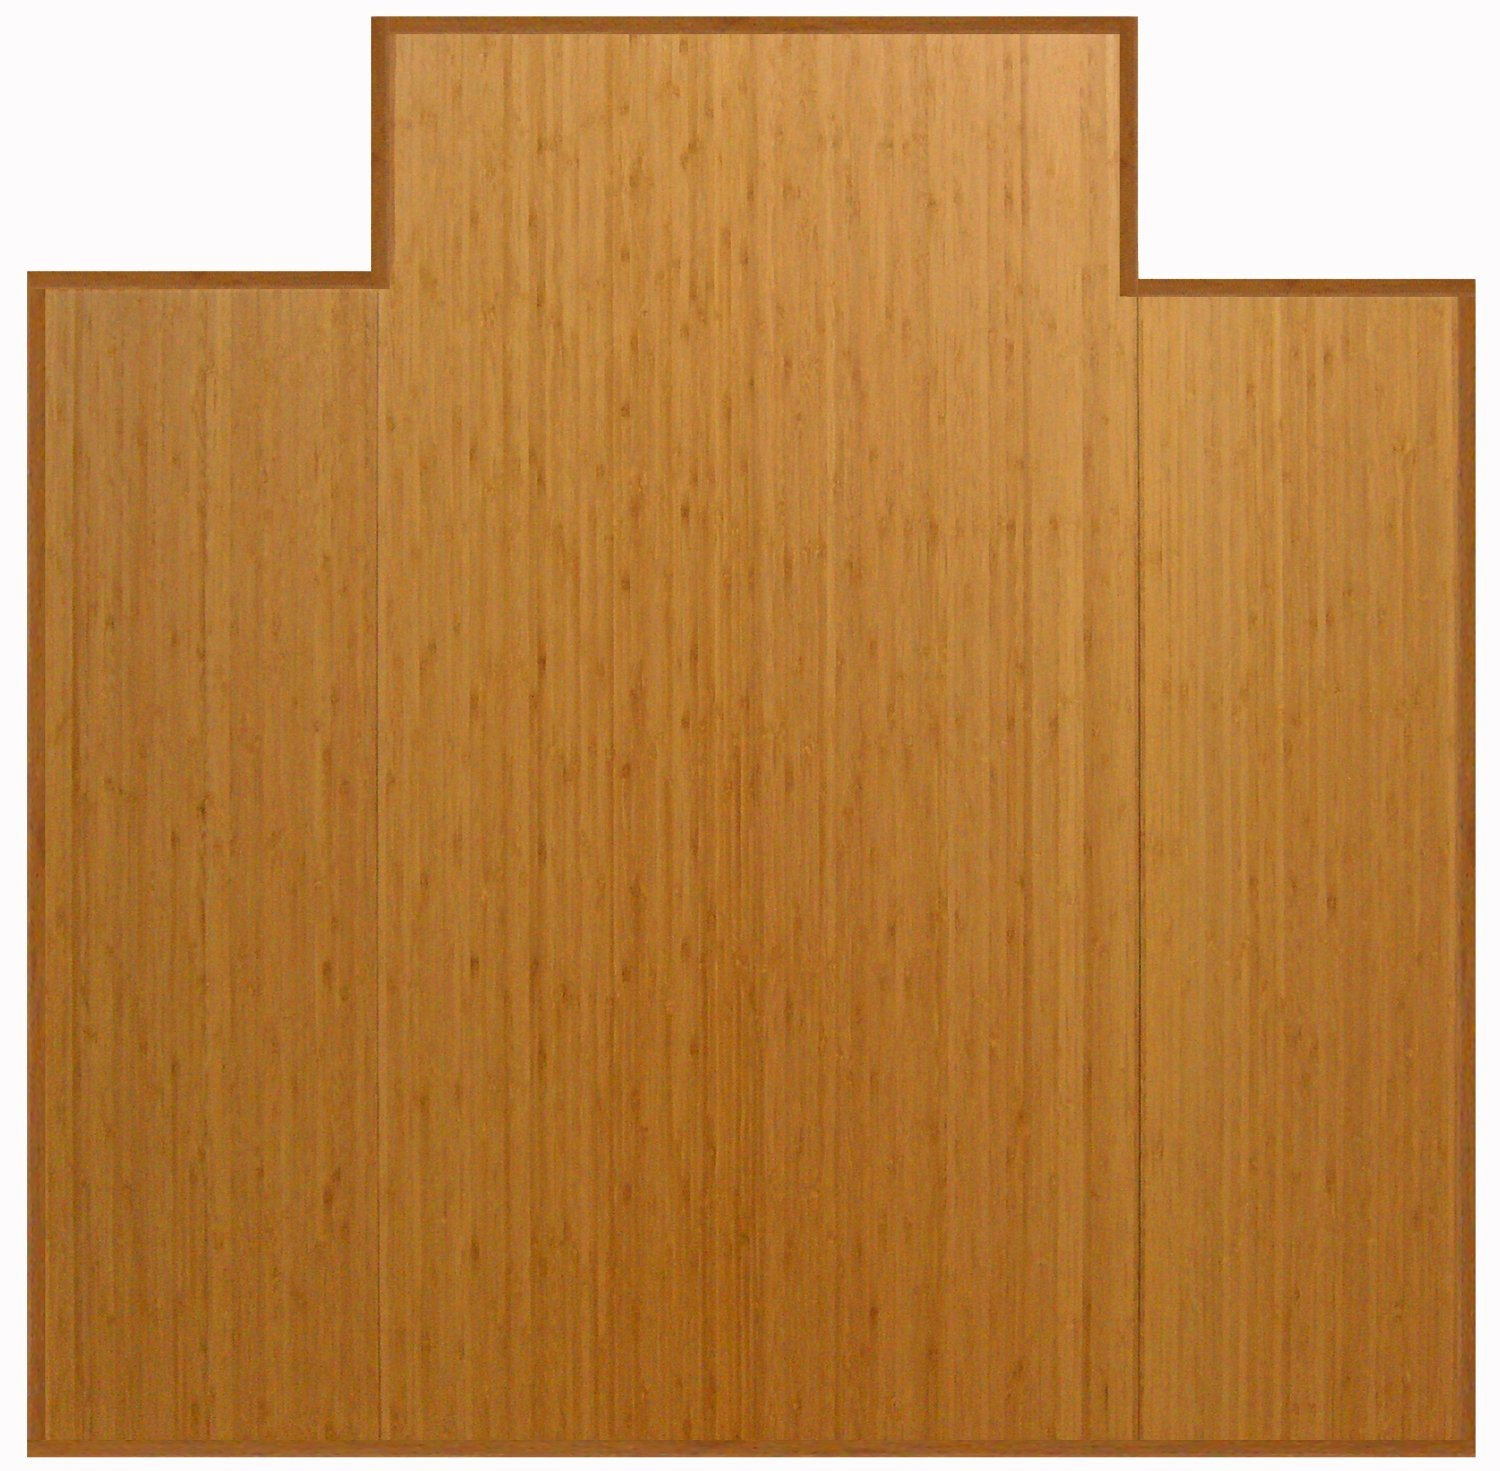 Bamboo Foldable Natural 36'' x 48'' w/ Lip 3/16'' Thickness Chair Mats by American Floor Mats